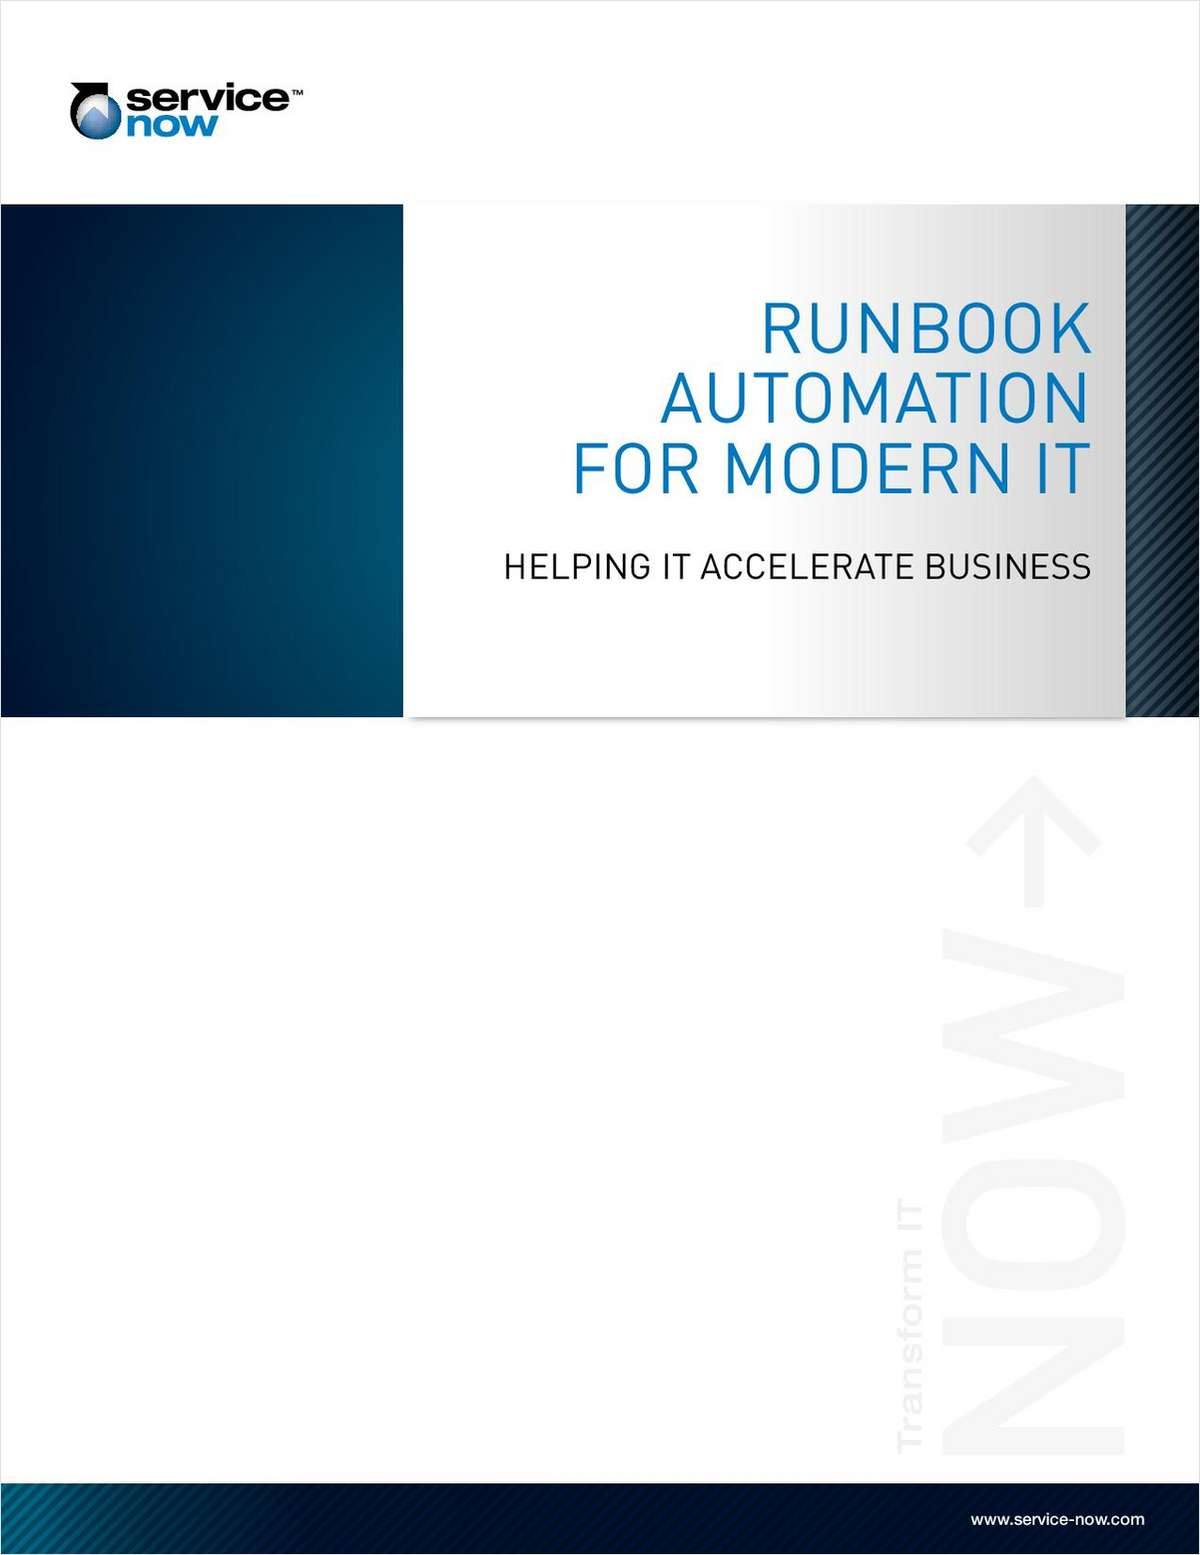 Runbook Automation for Modern IT